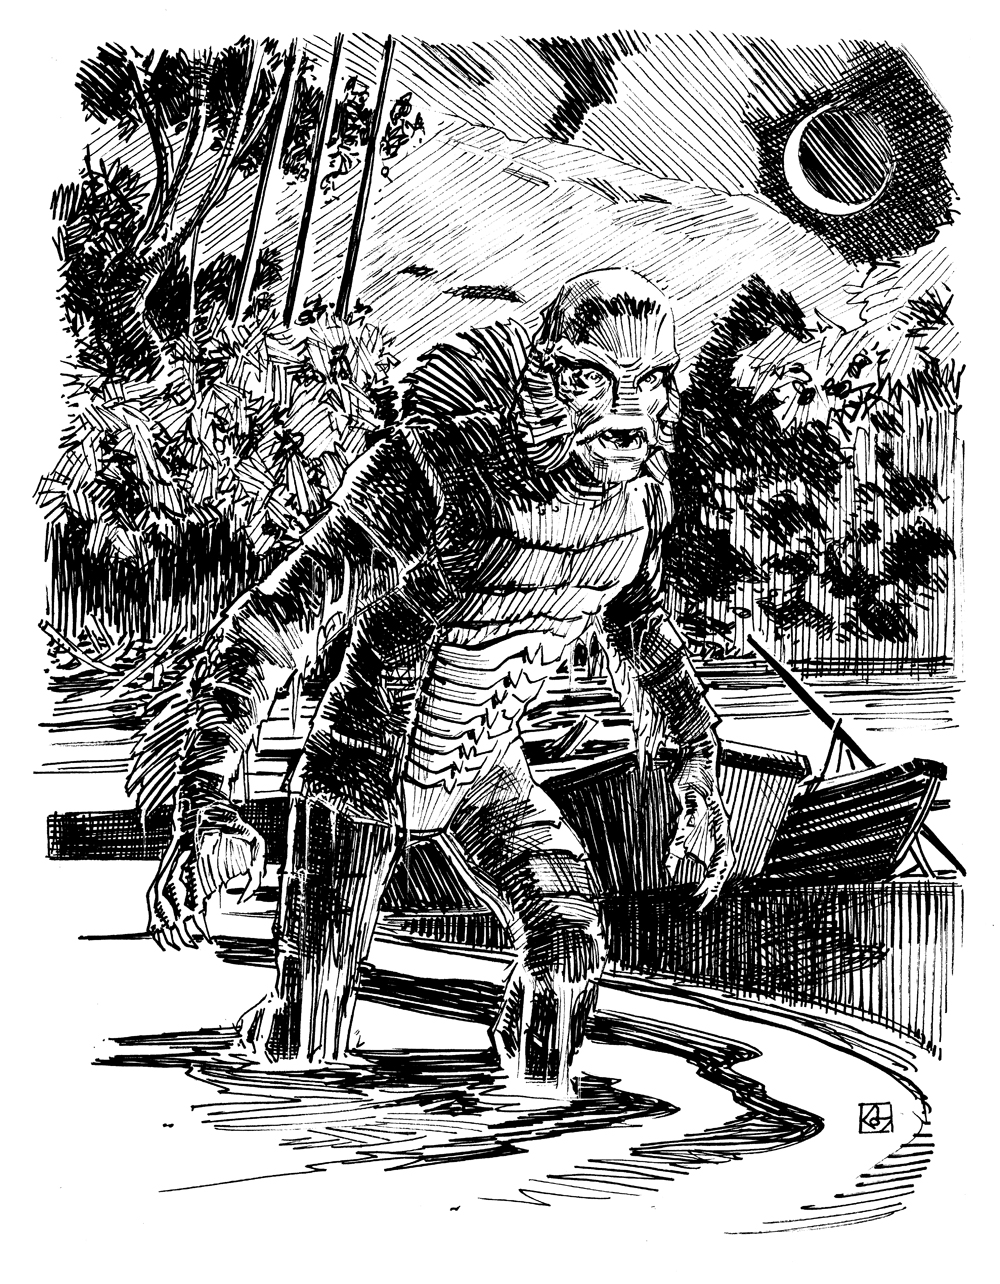 Creature from the black lagoon by deankotz on deviantart for Creature from the black lagoon coloring pages